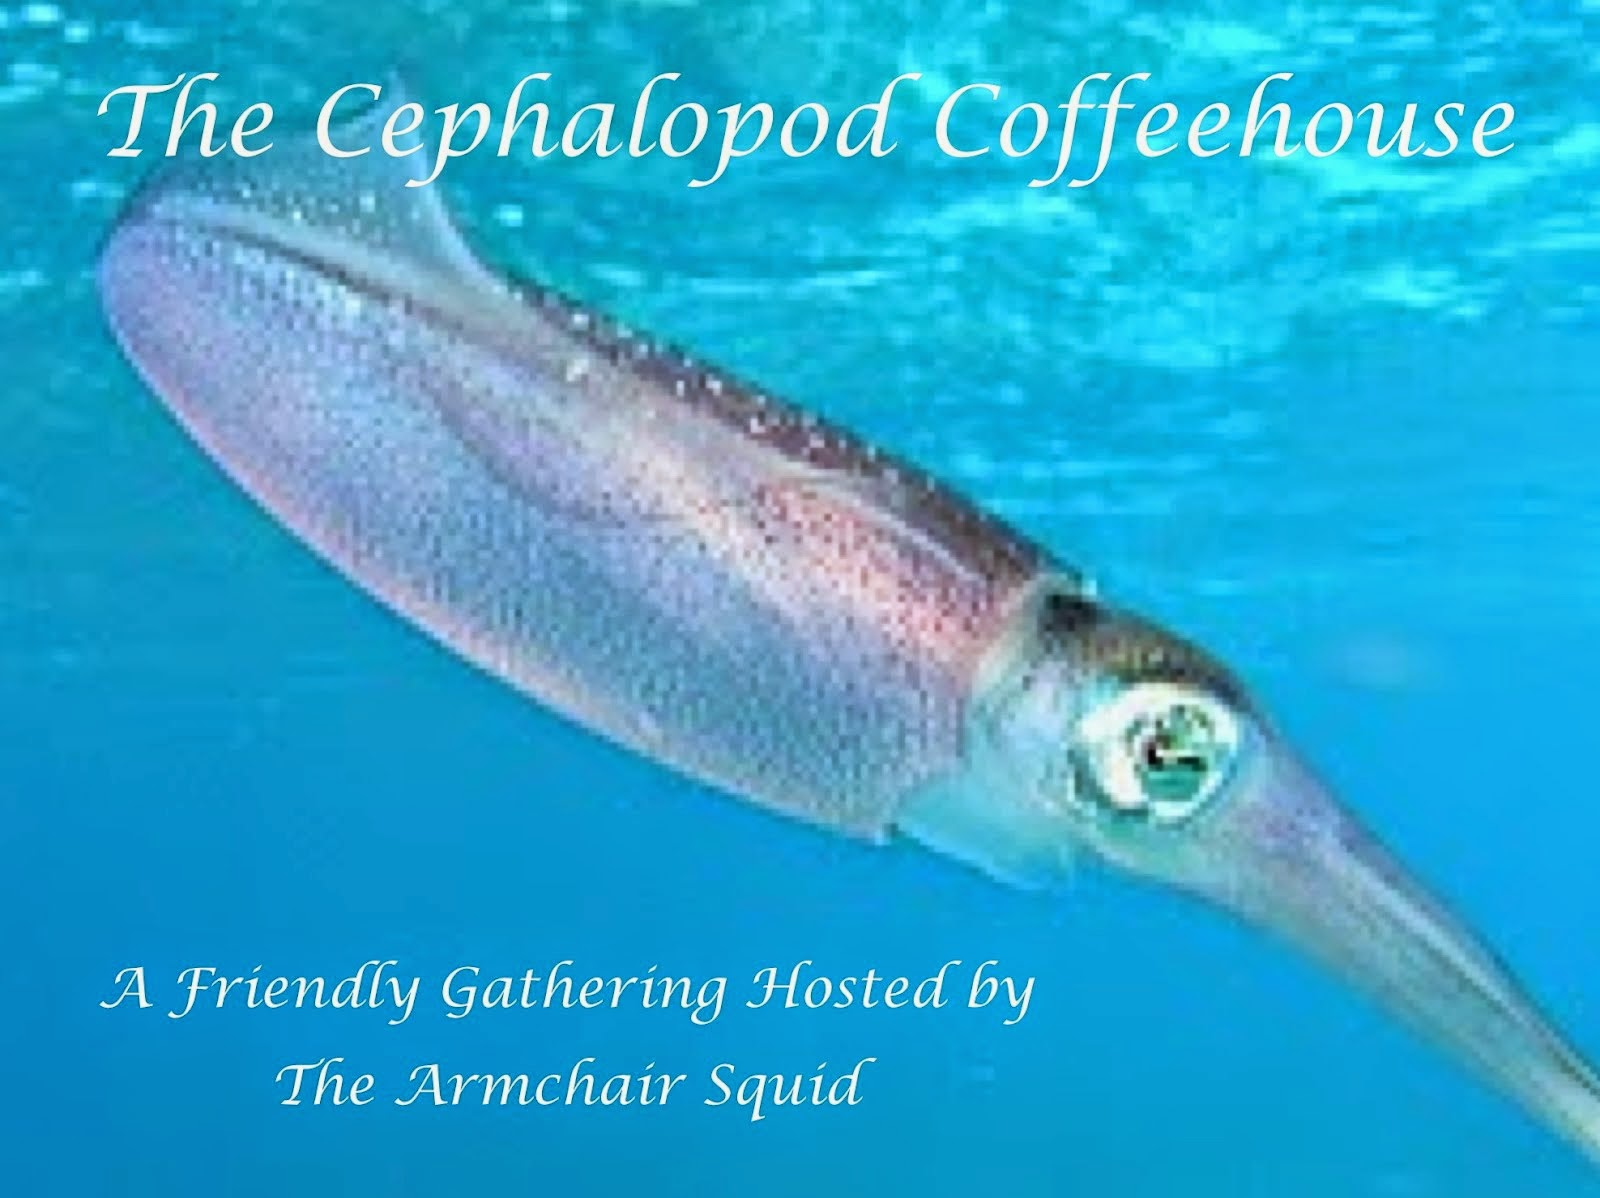 The Cephalopod Coffeehouse - December 26th